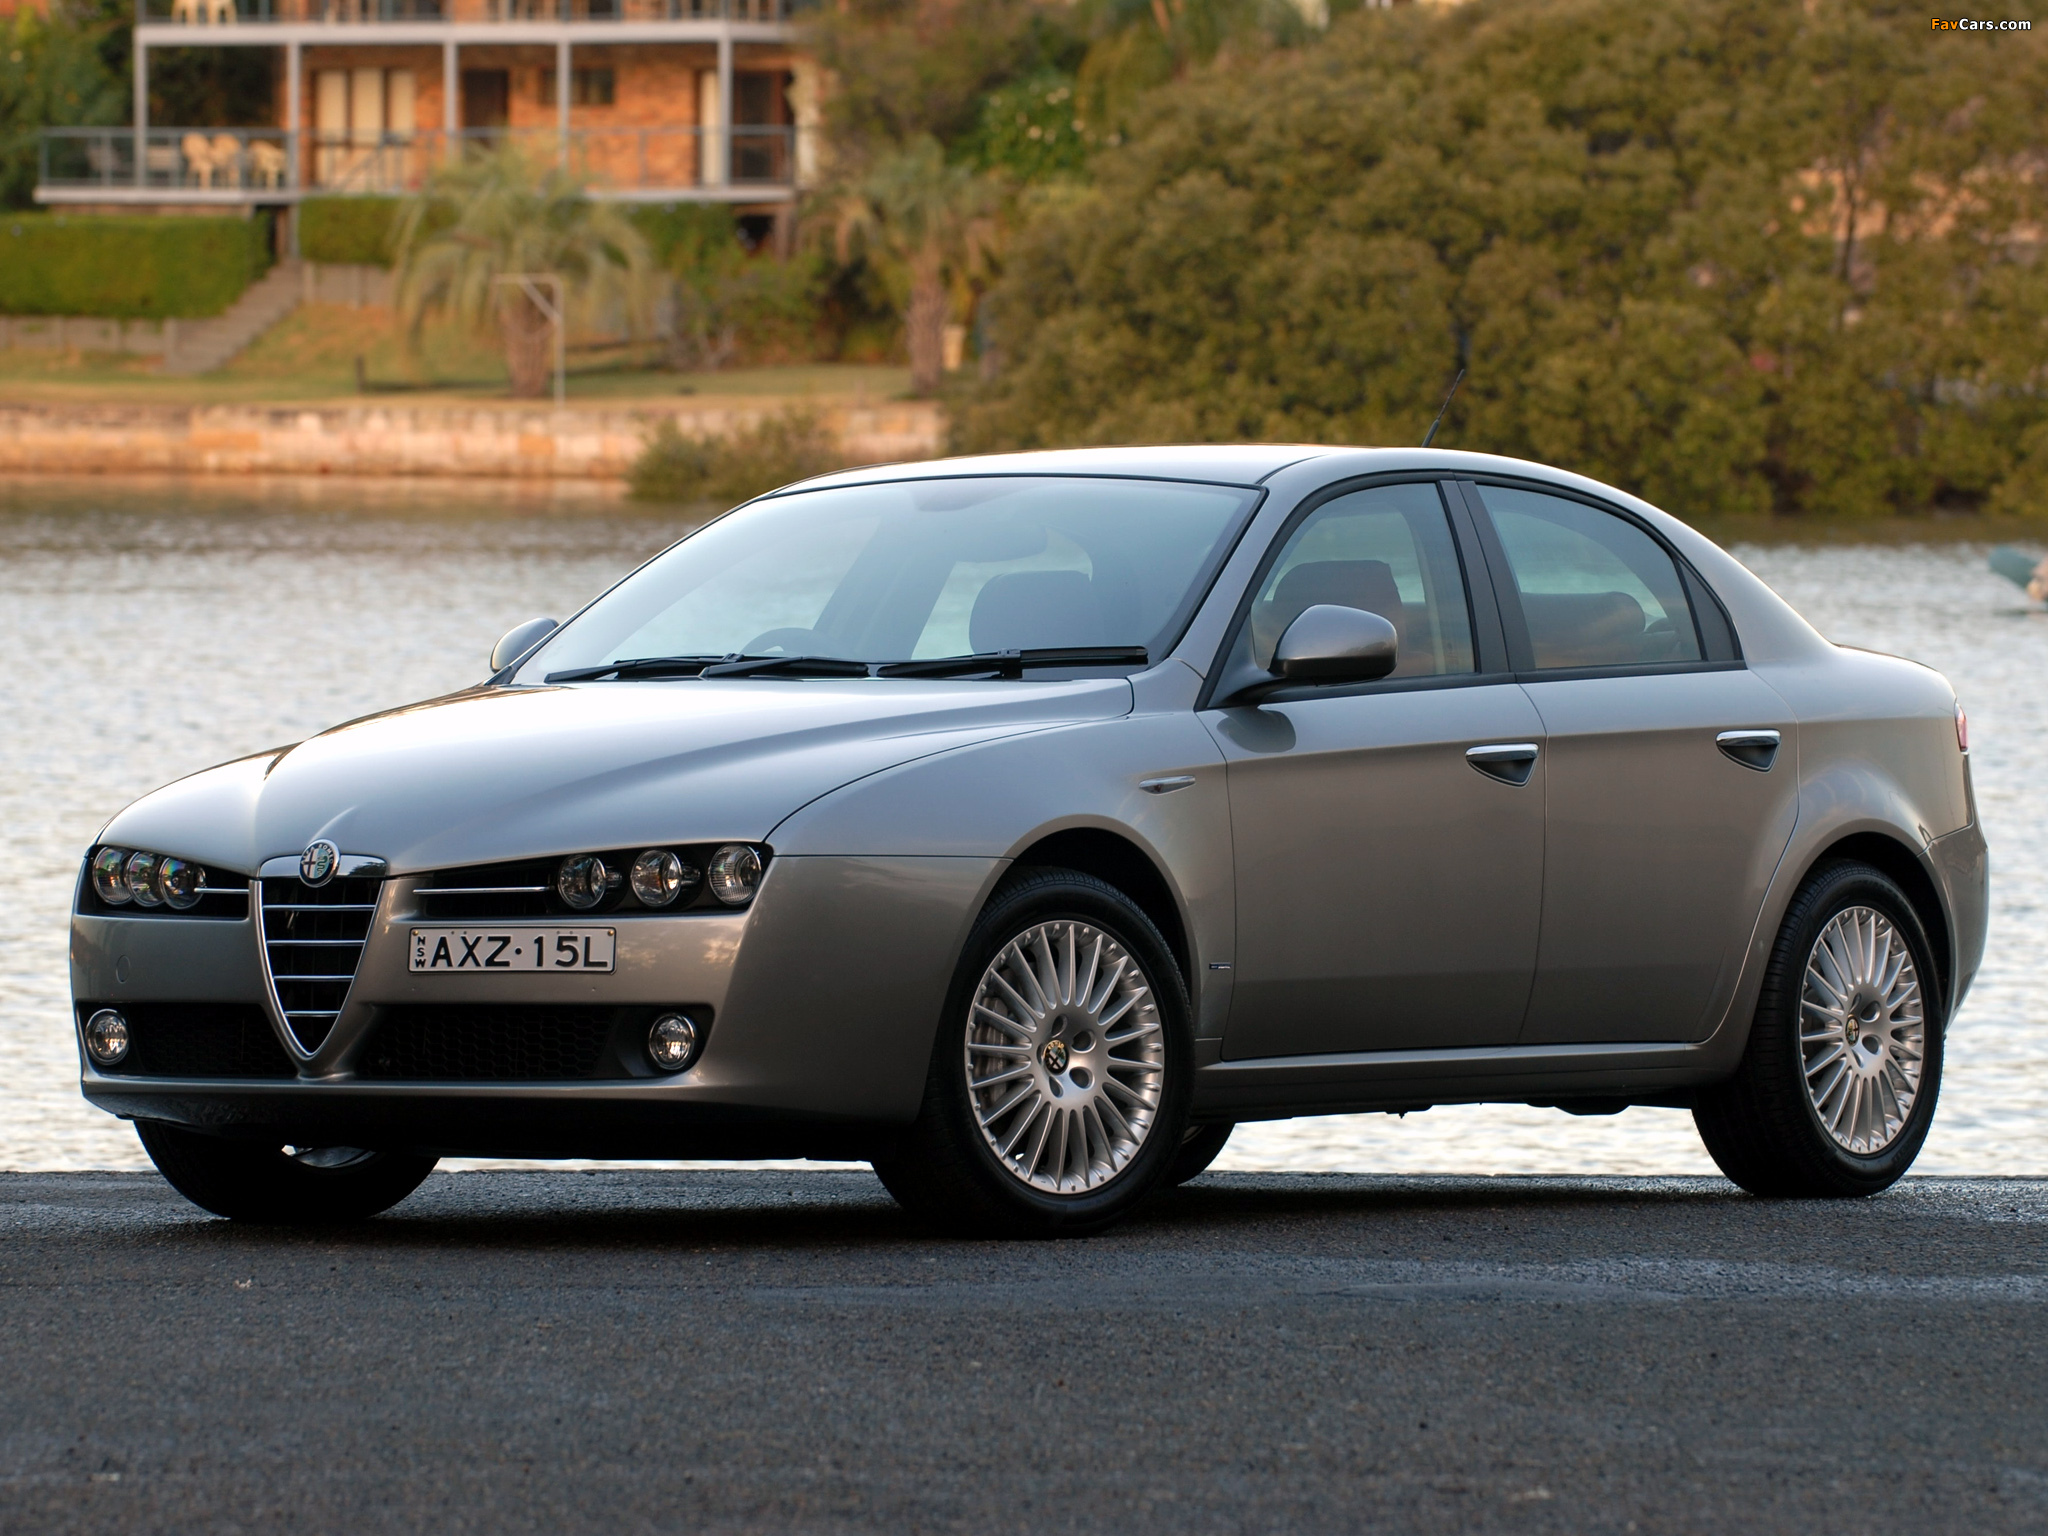 alfa romeo 159 2 4 jtdm au spec 939a 2006 2008 pictures. Black Bedroom Furniture Sets. Home Design Ideas